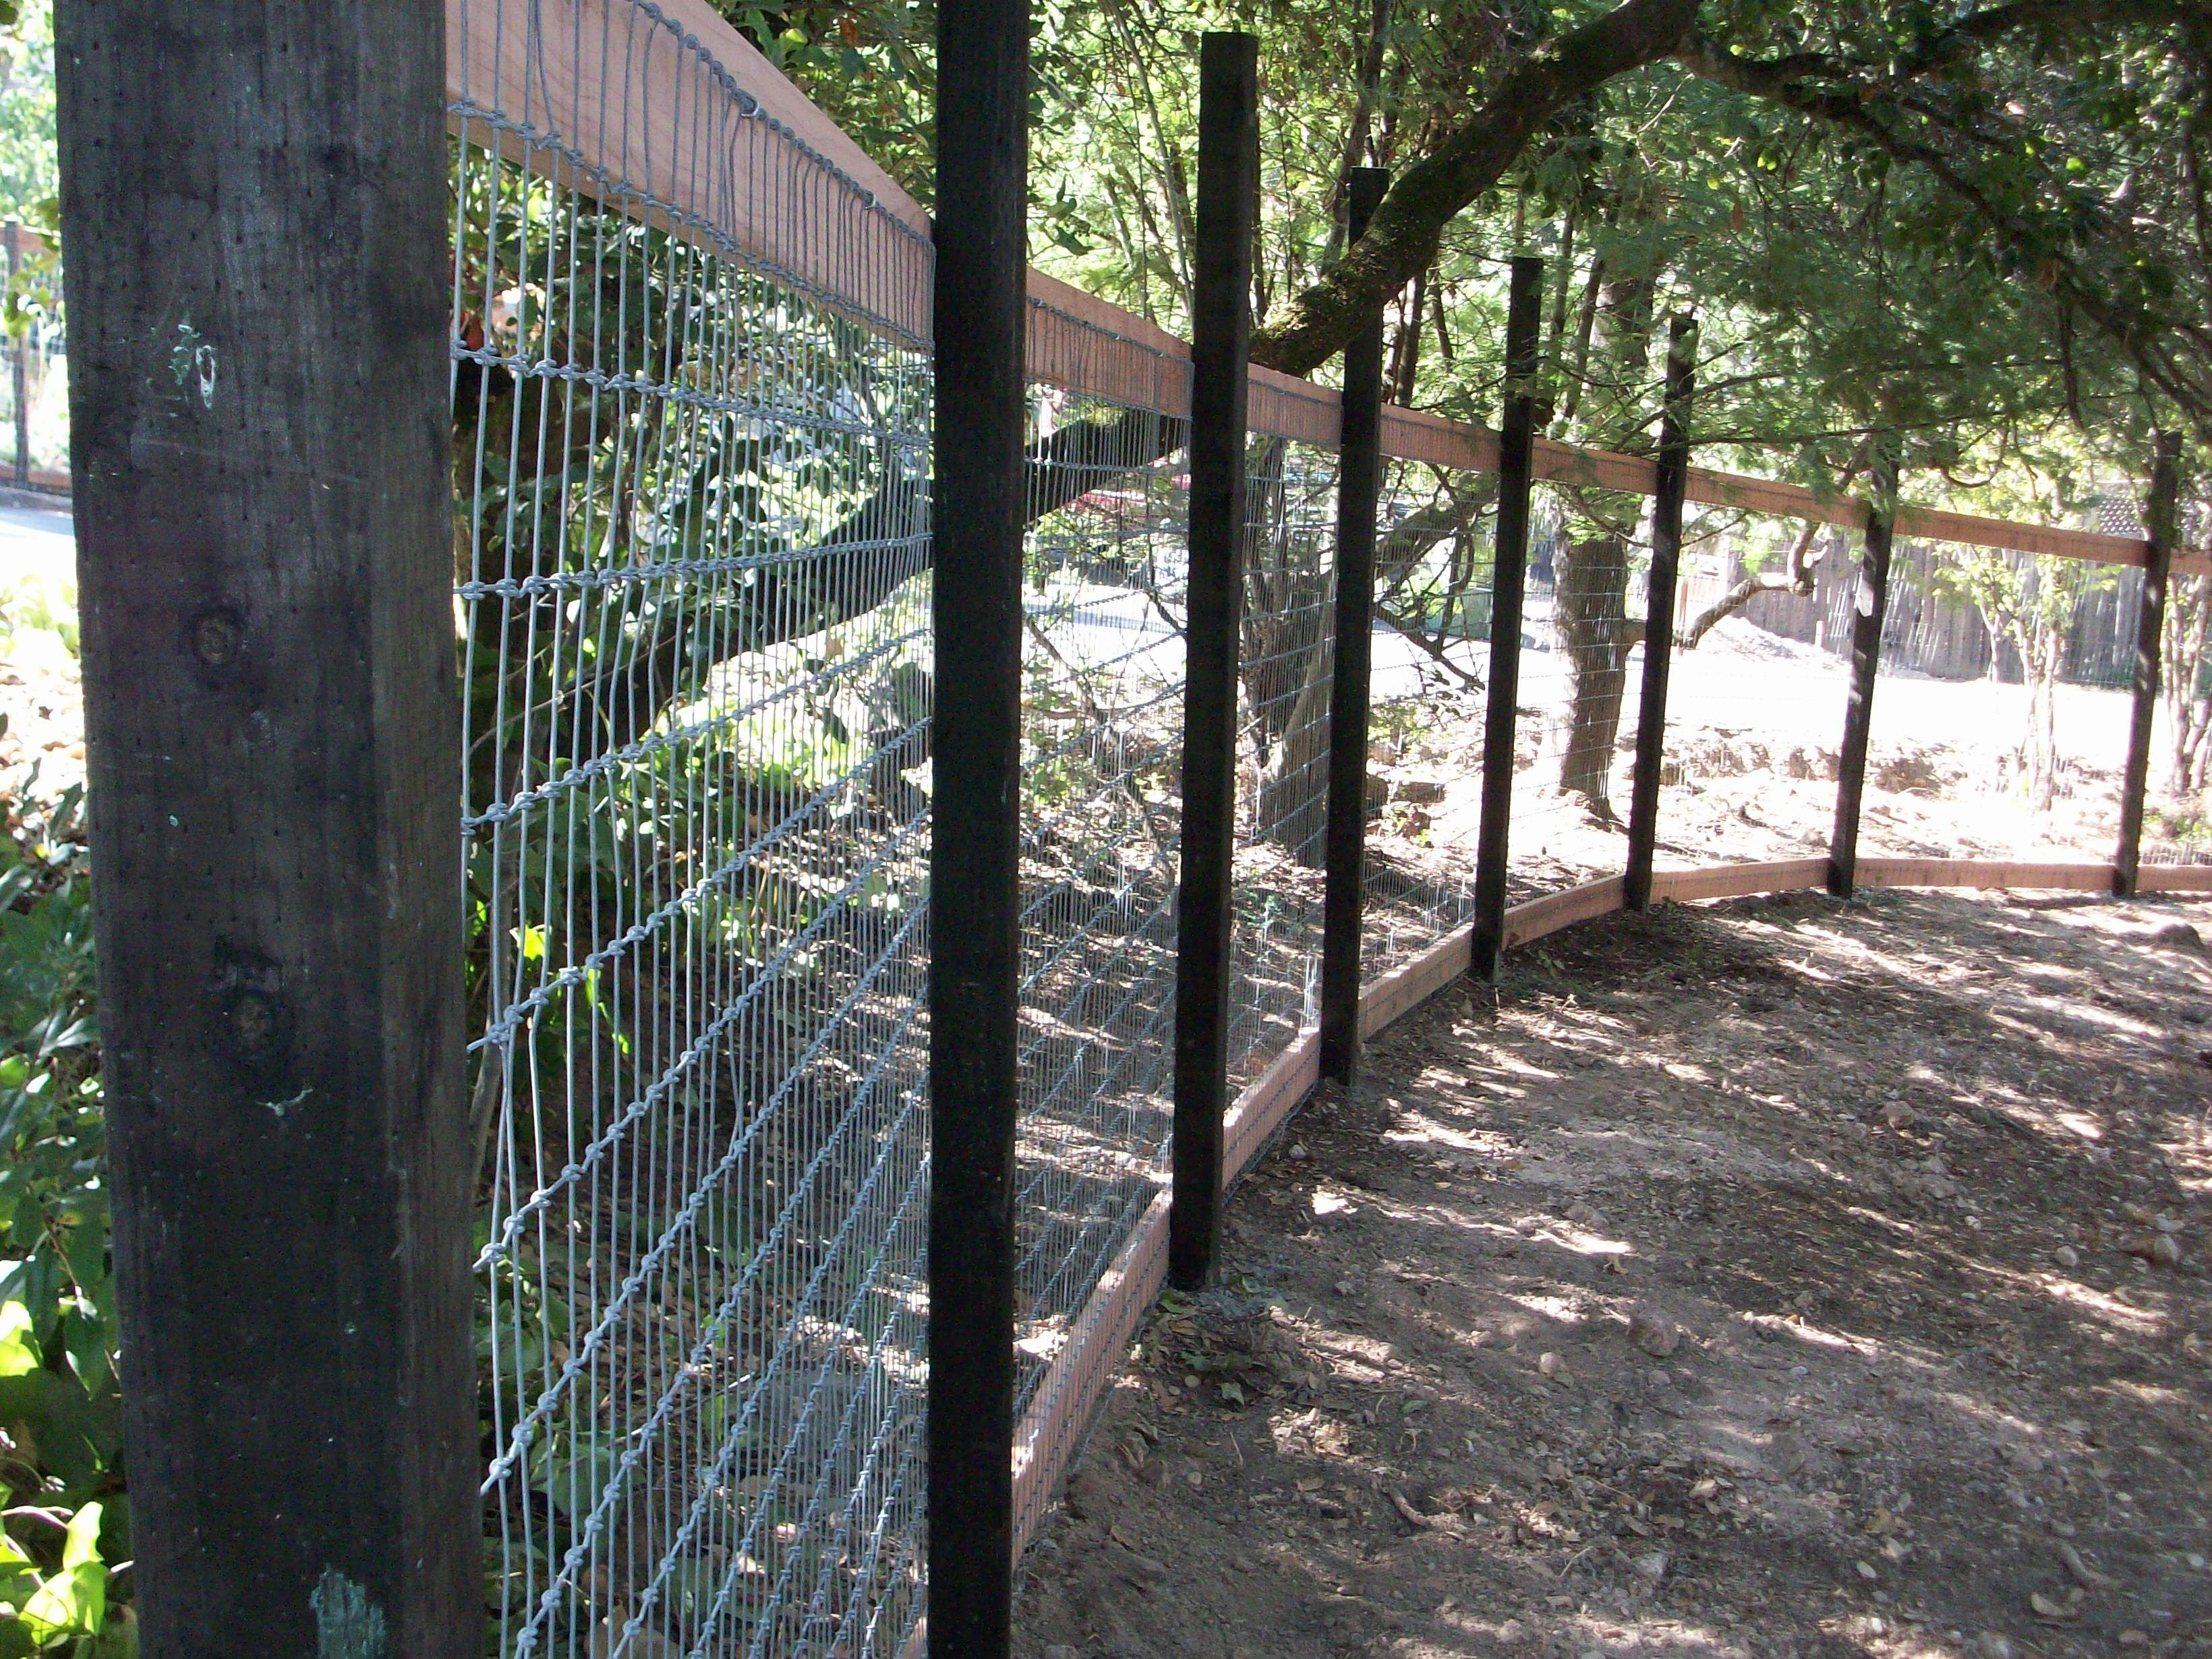 How do i keep deer out of my garden - Keep The Deer Out Of Your Garden With A Wire Fence By Arbor Fence Inc